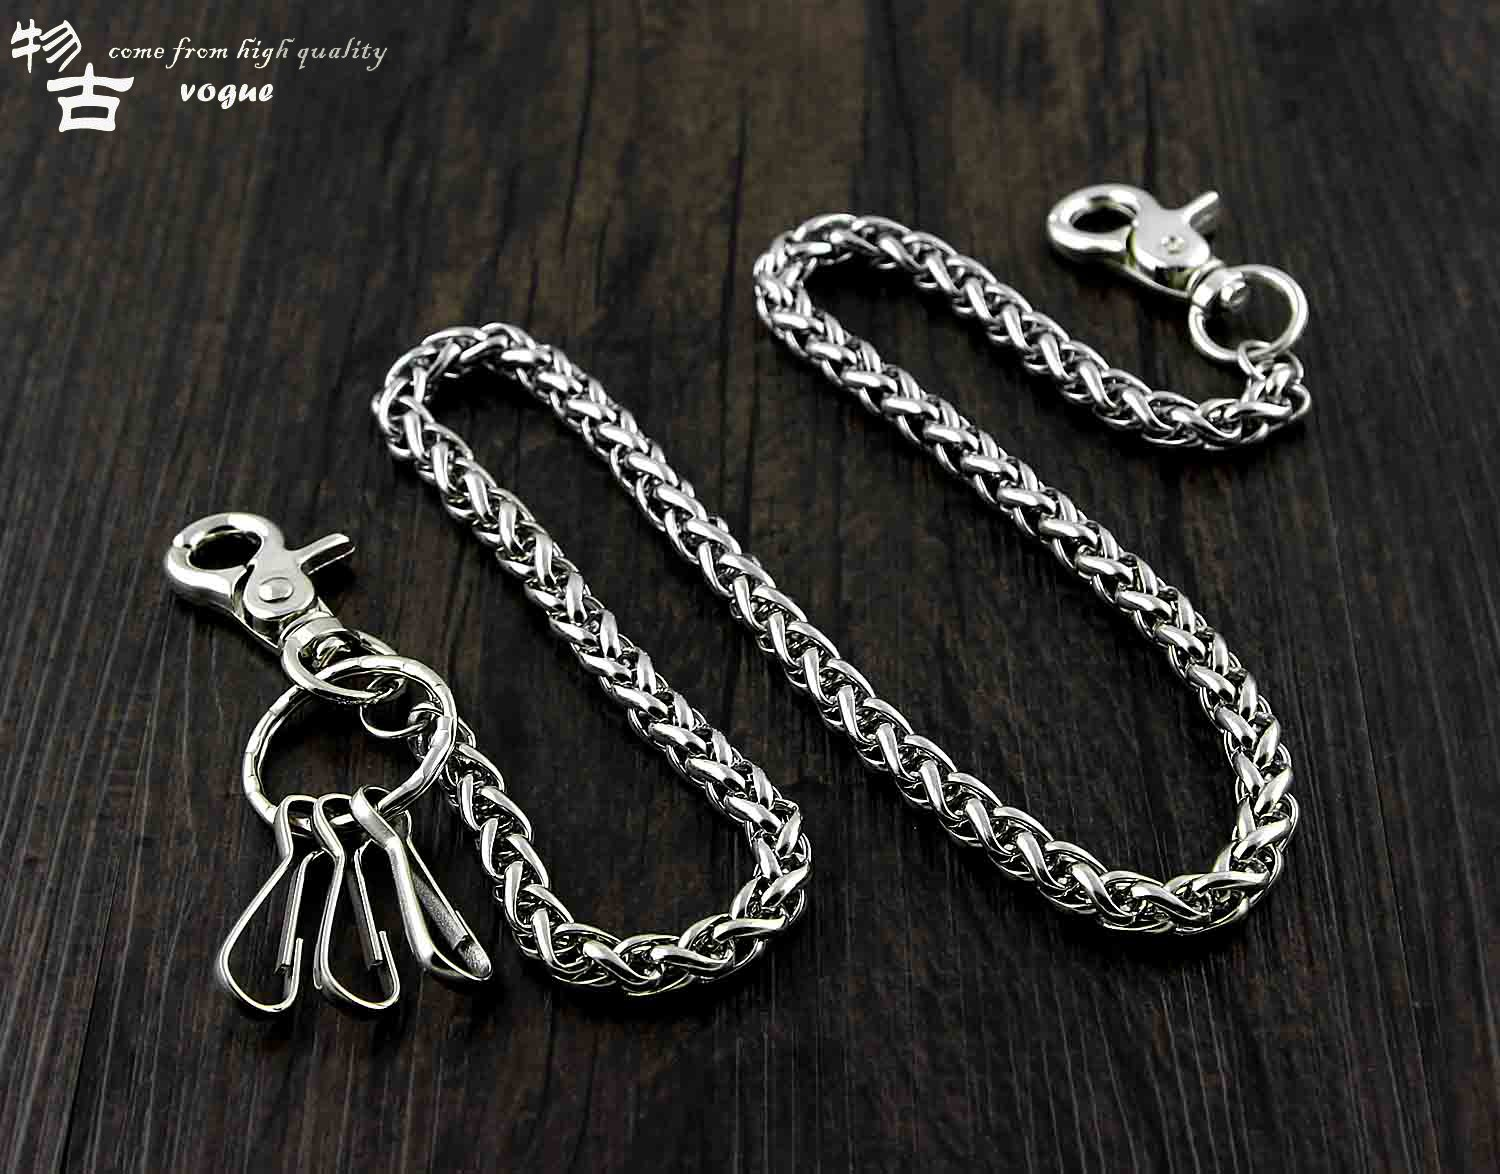 Punk Trousers Chain Fashion Hip-hop Trendy Stainless Steel Belts Waist Chain Male Pants Chain Hot Men Women Jeans Silver Metal Clothing Accessories